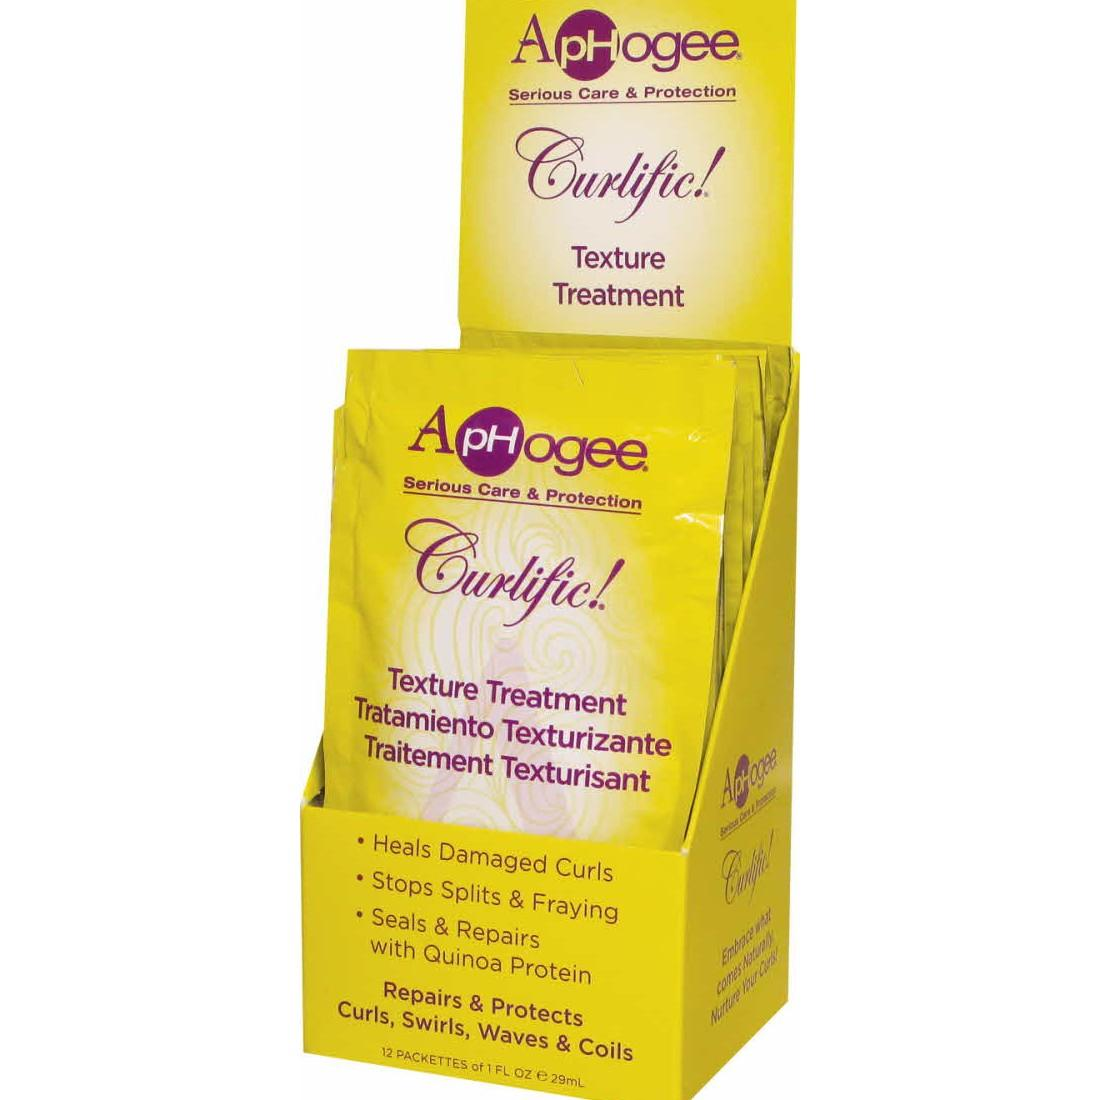 Aphogee Curlific Texture Treatment Packet